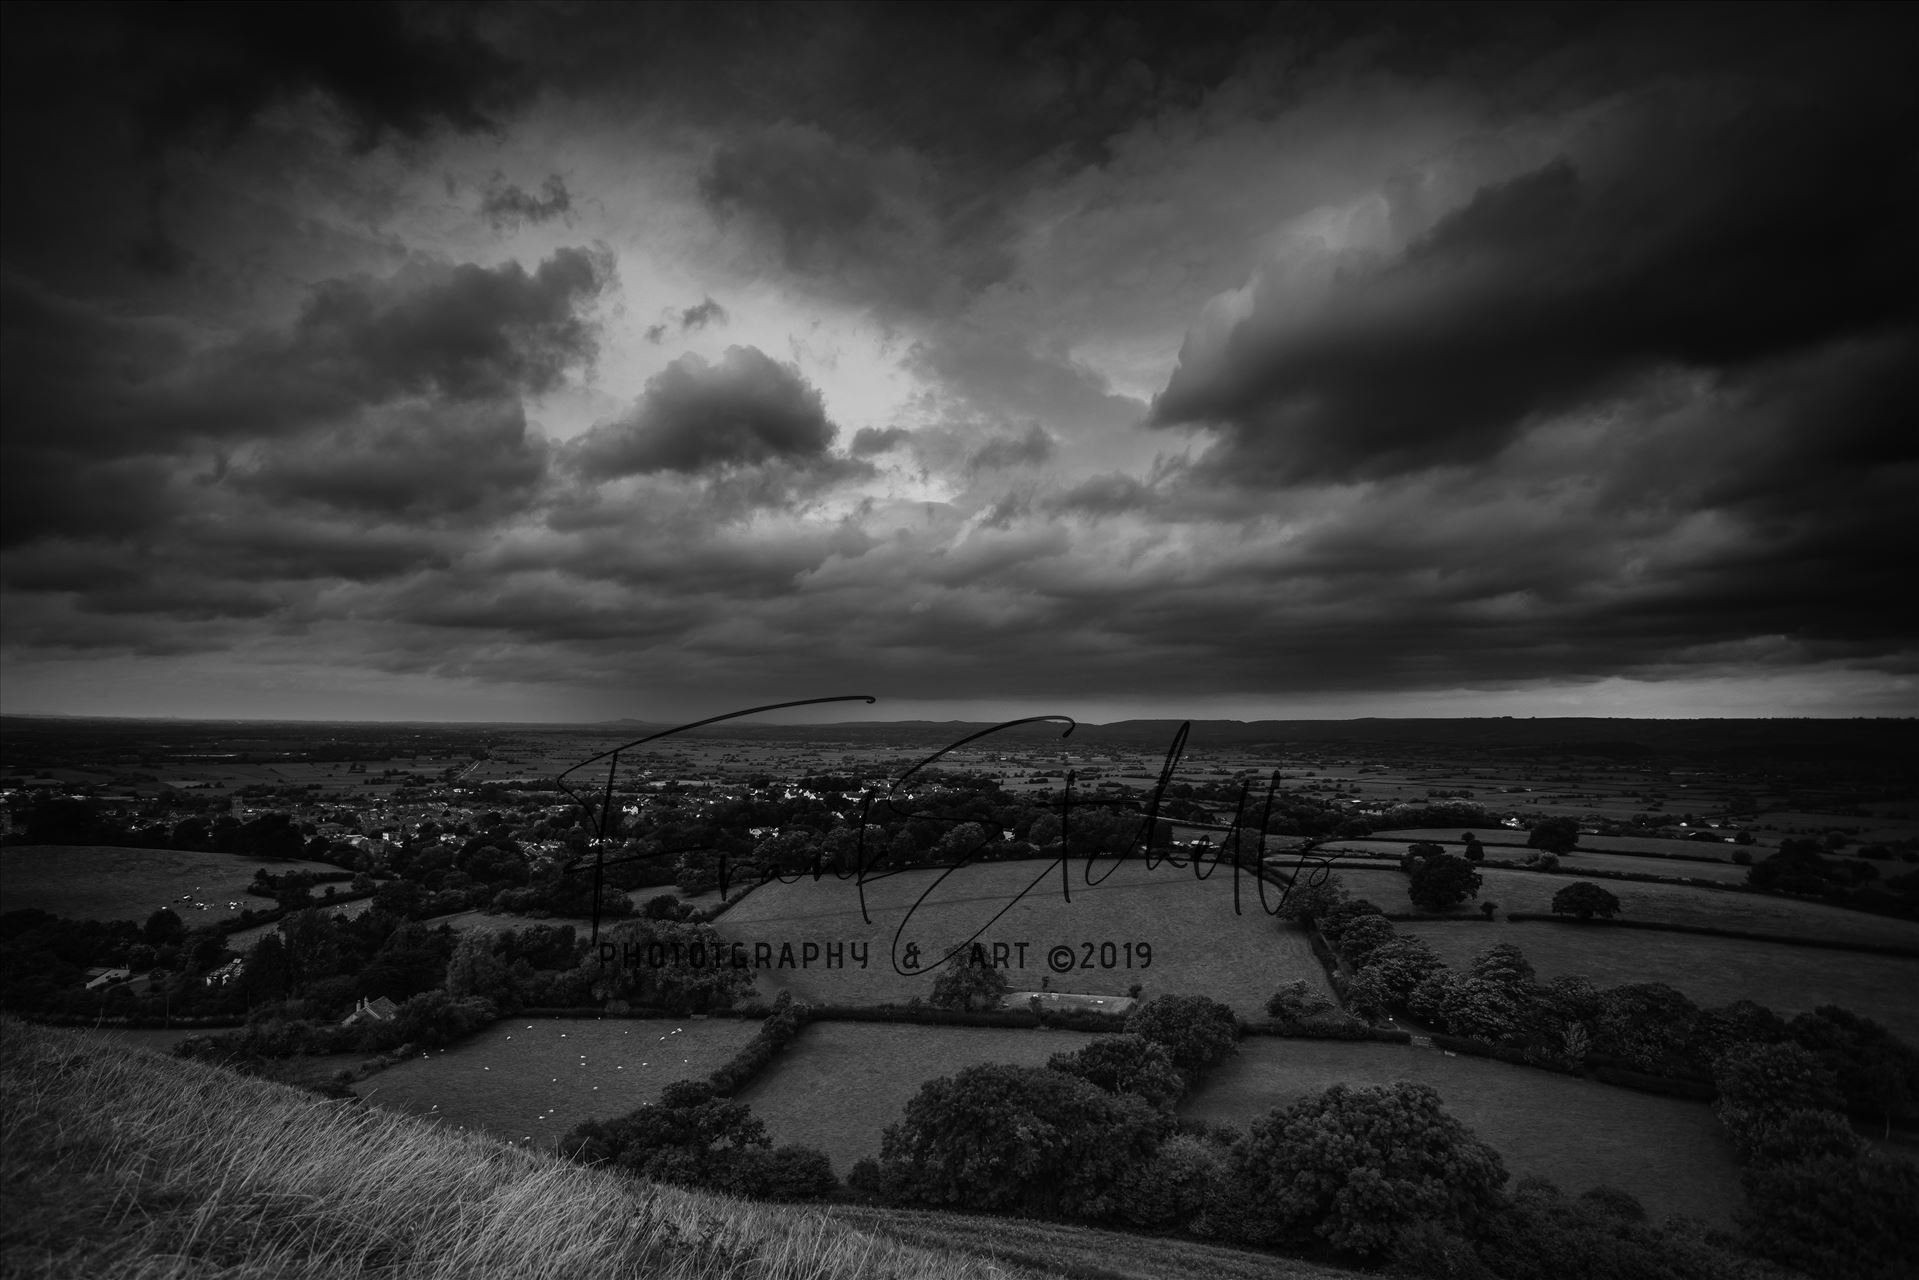 Approaching Storm Clouds BW - The wind blew strongly at the top and towards St. Michael's tower overlooking the surrounding lands bringing the clouds with it, they darkened and revealed approaching rain in the far distance... yet the sun broke briefly behind me to cast light below by Frank Etchells Photography